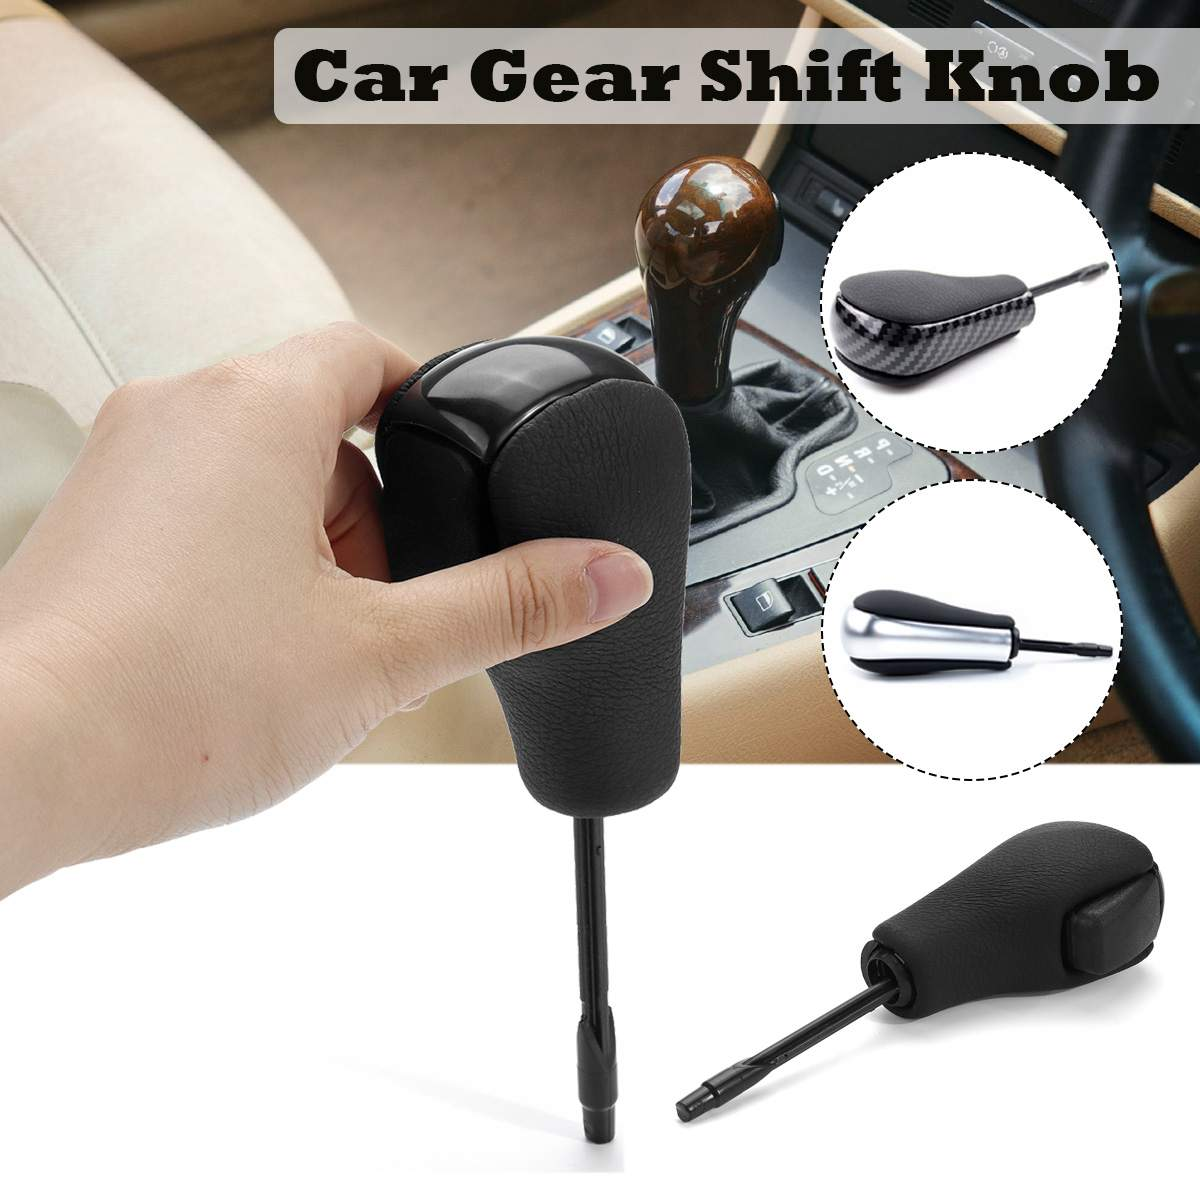 Black/Chrome/Carbon Car Auto styling Automatic vehicles Gear Shift Knob Stick for <font><b>BMW</b></font> E46 <font><b>E60</b></font> E39 E83 E53 E61 3 <font><b>5</b></font> 7 X <font><b>Series</b></font> image